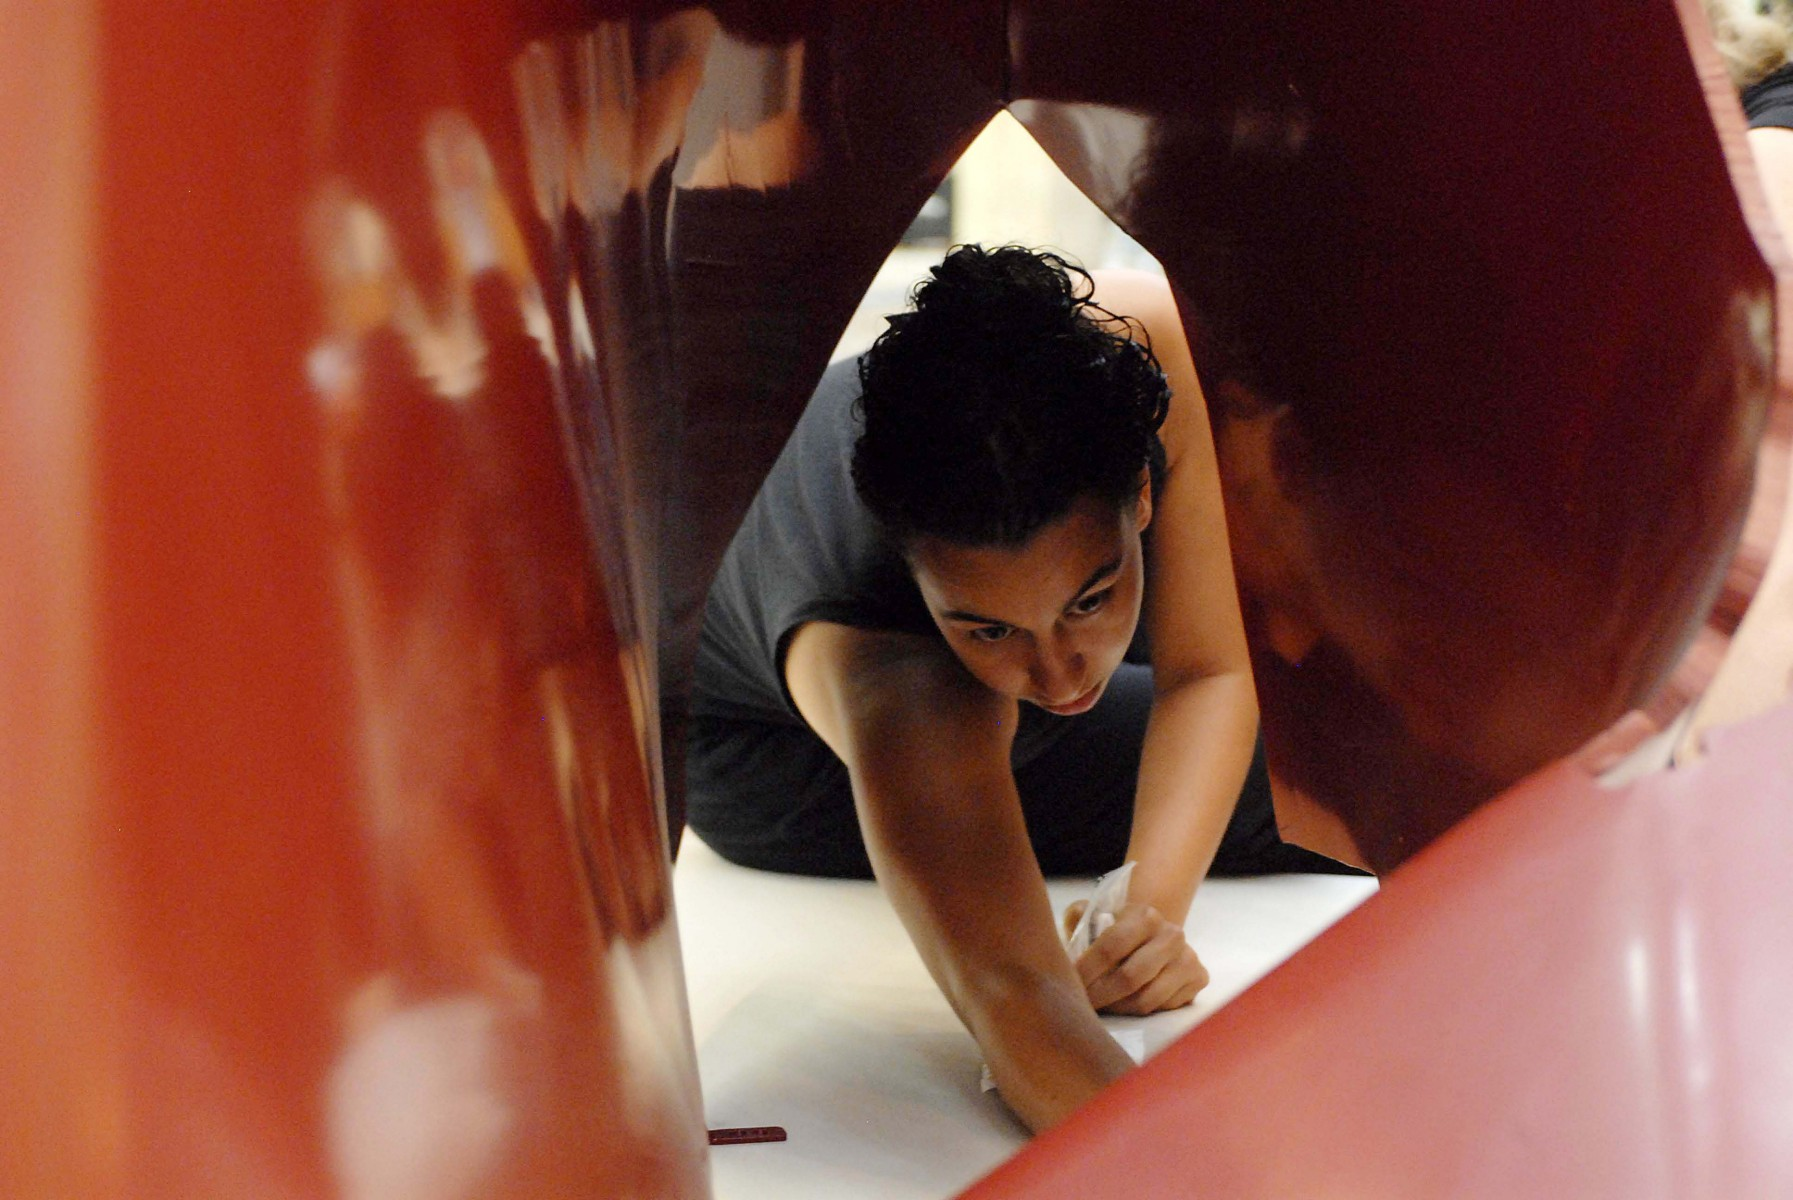 woman crawling inside tight space of red shiny sculpture